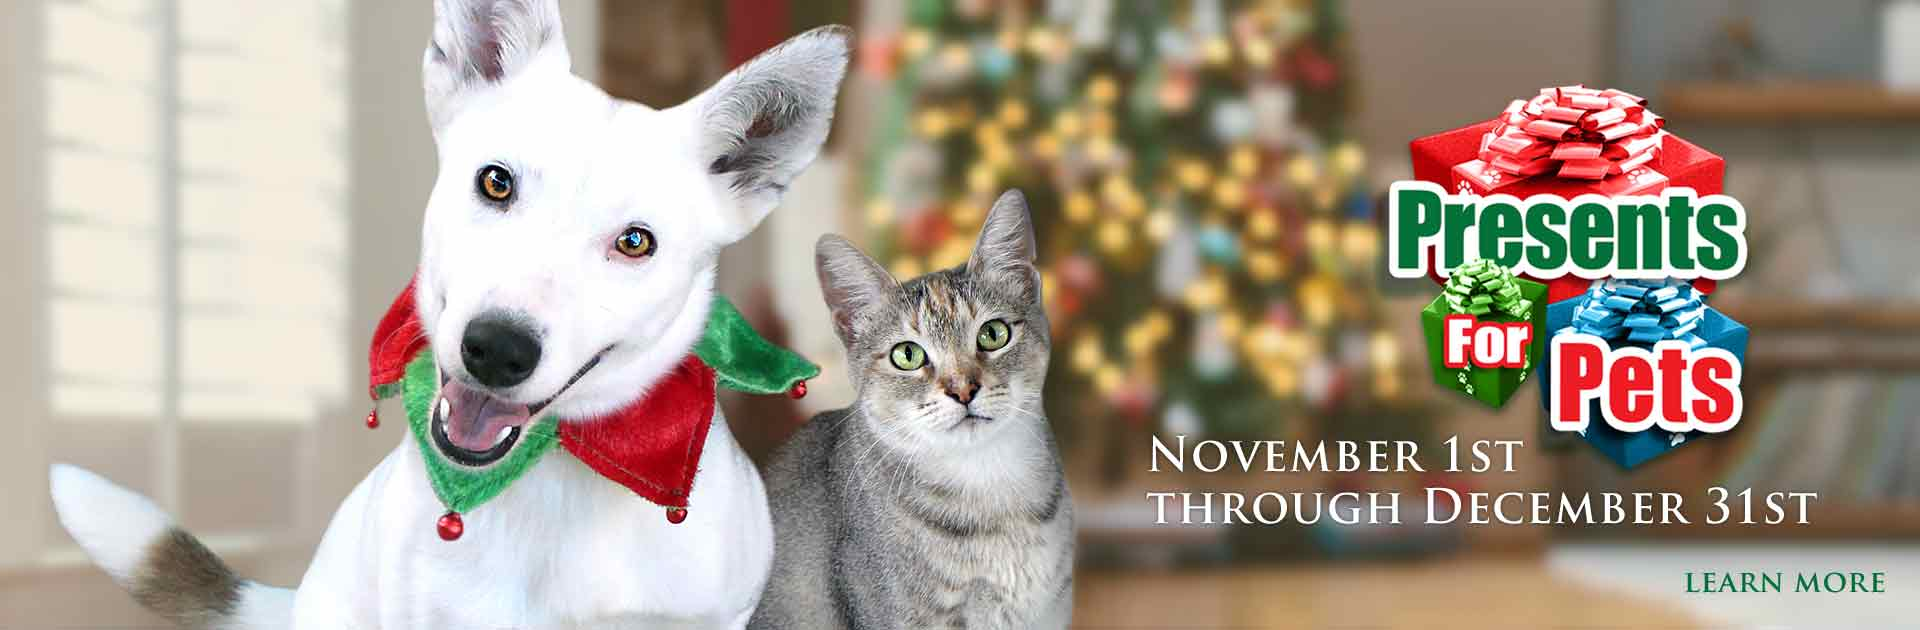 "Dorothy H. O'Connor Pet Adoption Center (DOCPAC) is having our annual ""Presents for Pets"" fund-raising event November 1st through December 31st, 2020."